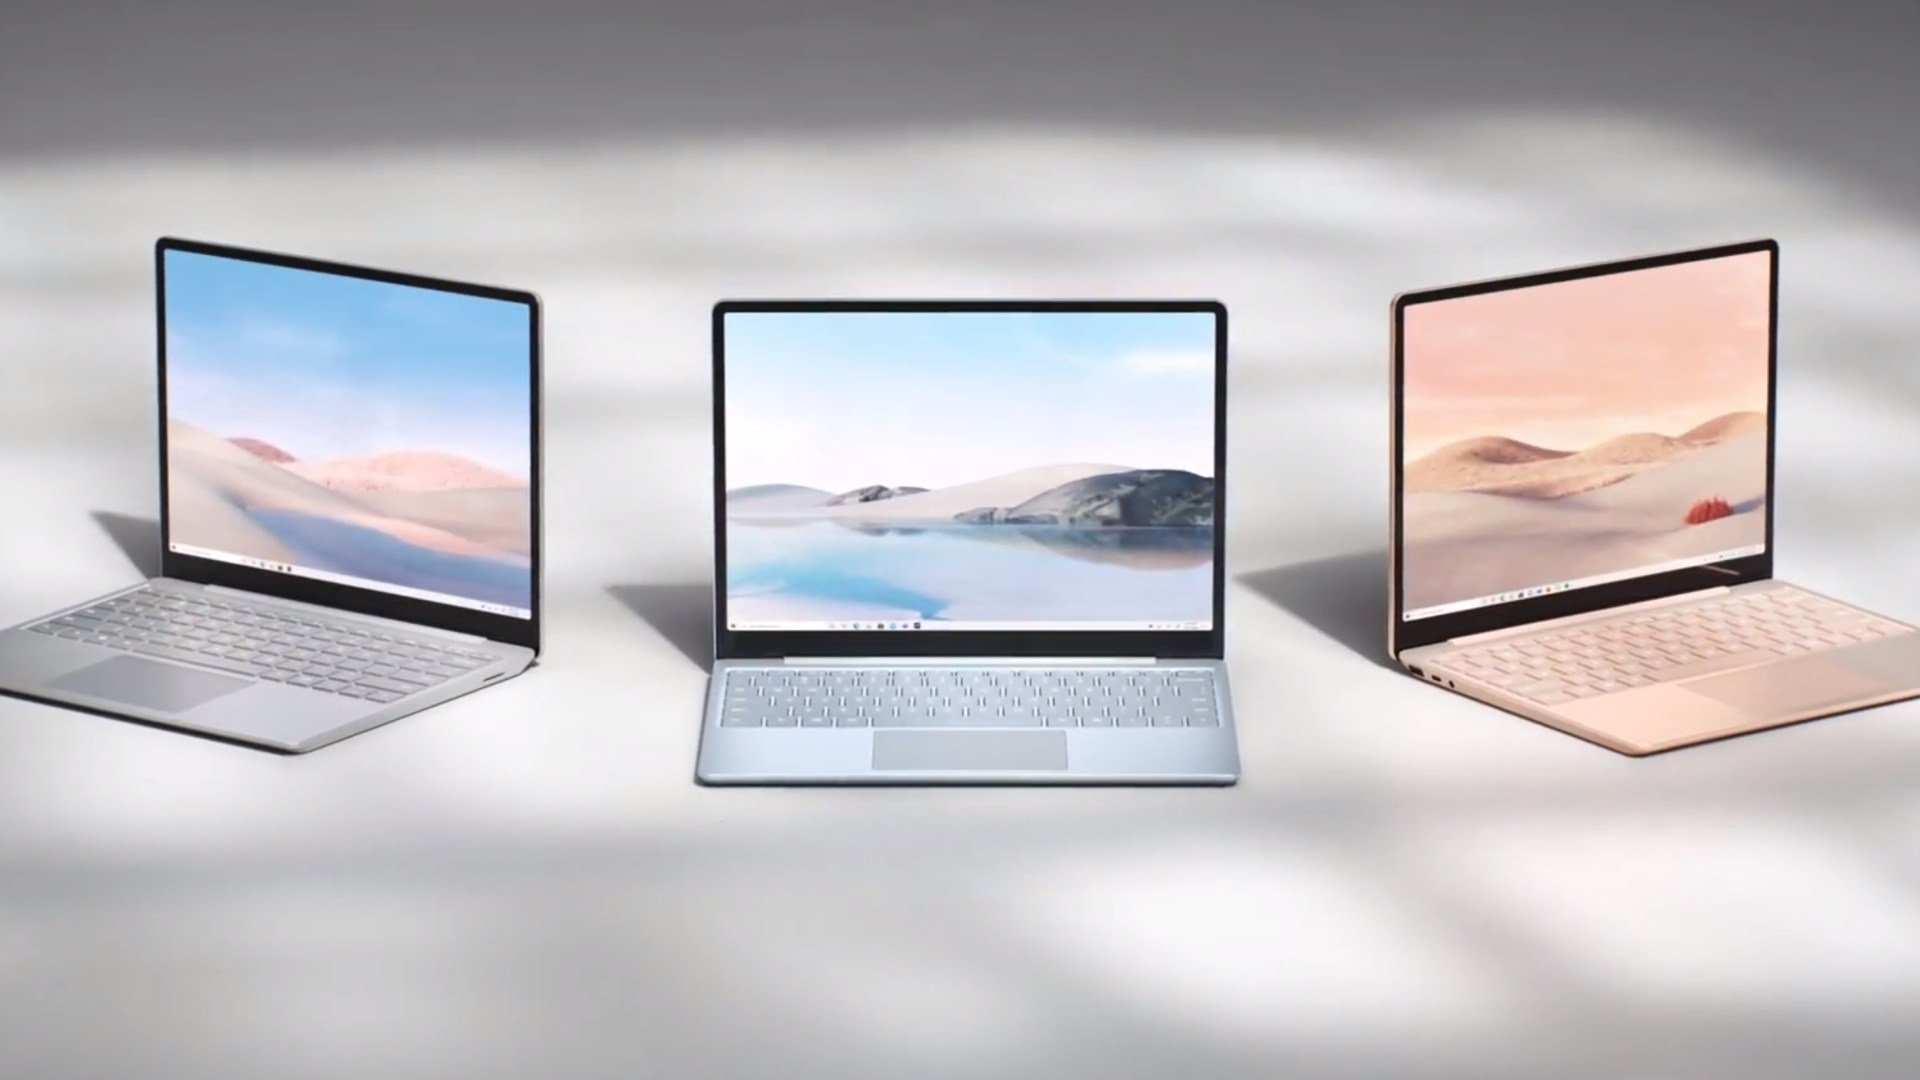 Microsoft, Notebook, Laptop, Surface, Microsoft Surface, Surface Laptop, Surface Laptop Go